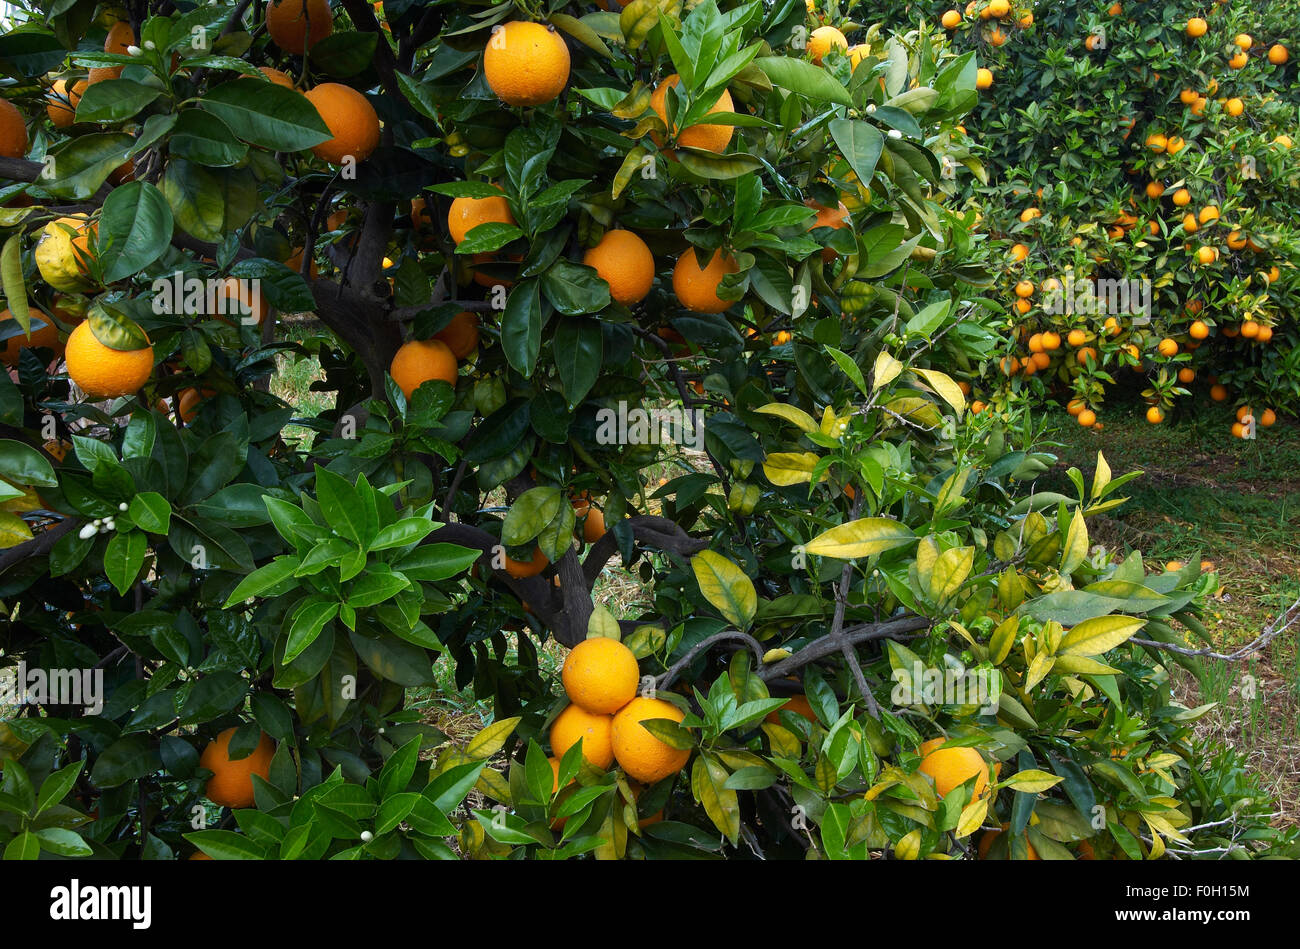 Ripe oranges on tree (Citrus sinensis) Crete, Greece, April 2009 Stock Photo